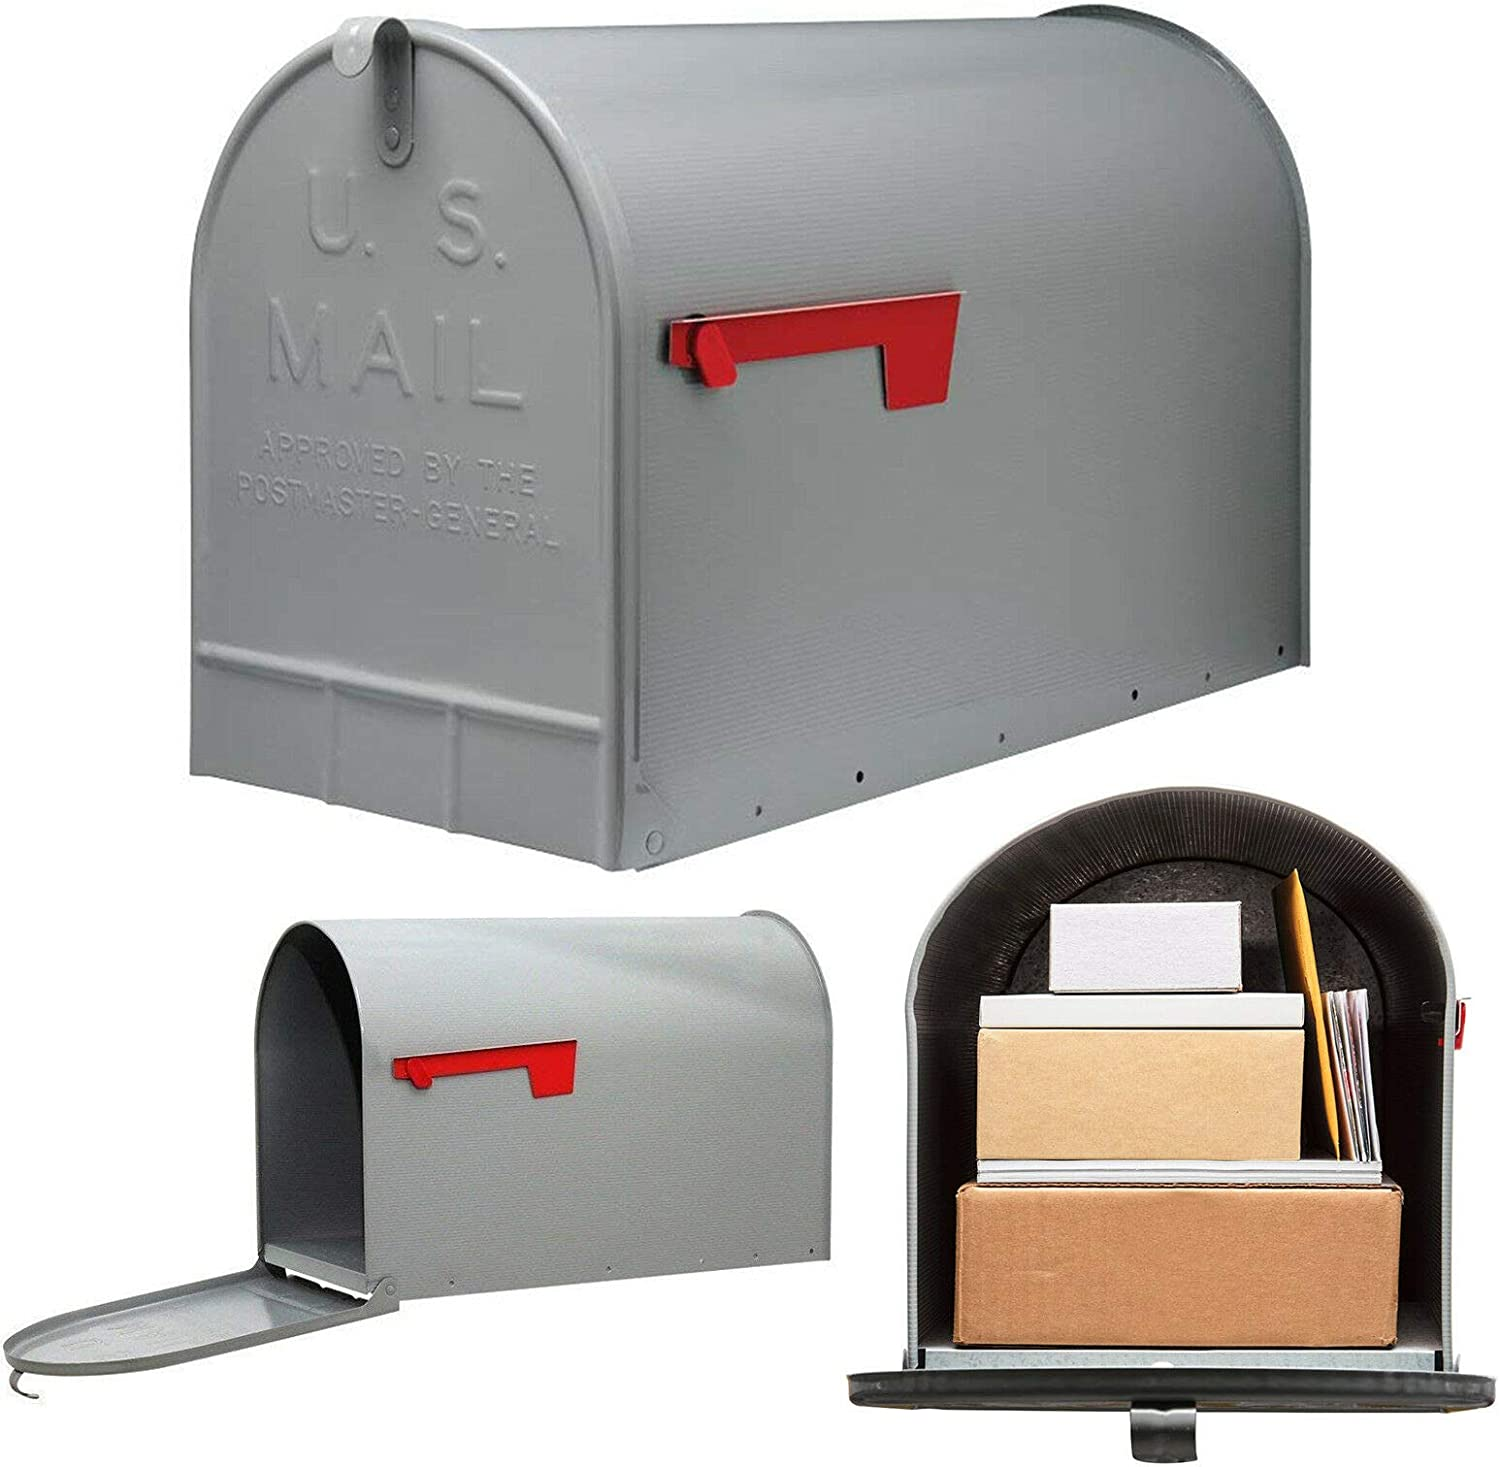 Post Mount Mailbox Extra Large Postal Storage Box Gray Galvanized Steel Heavy - mailboxes for Outside - Large Mailbox.